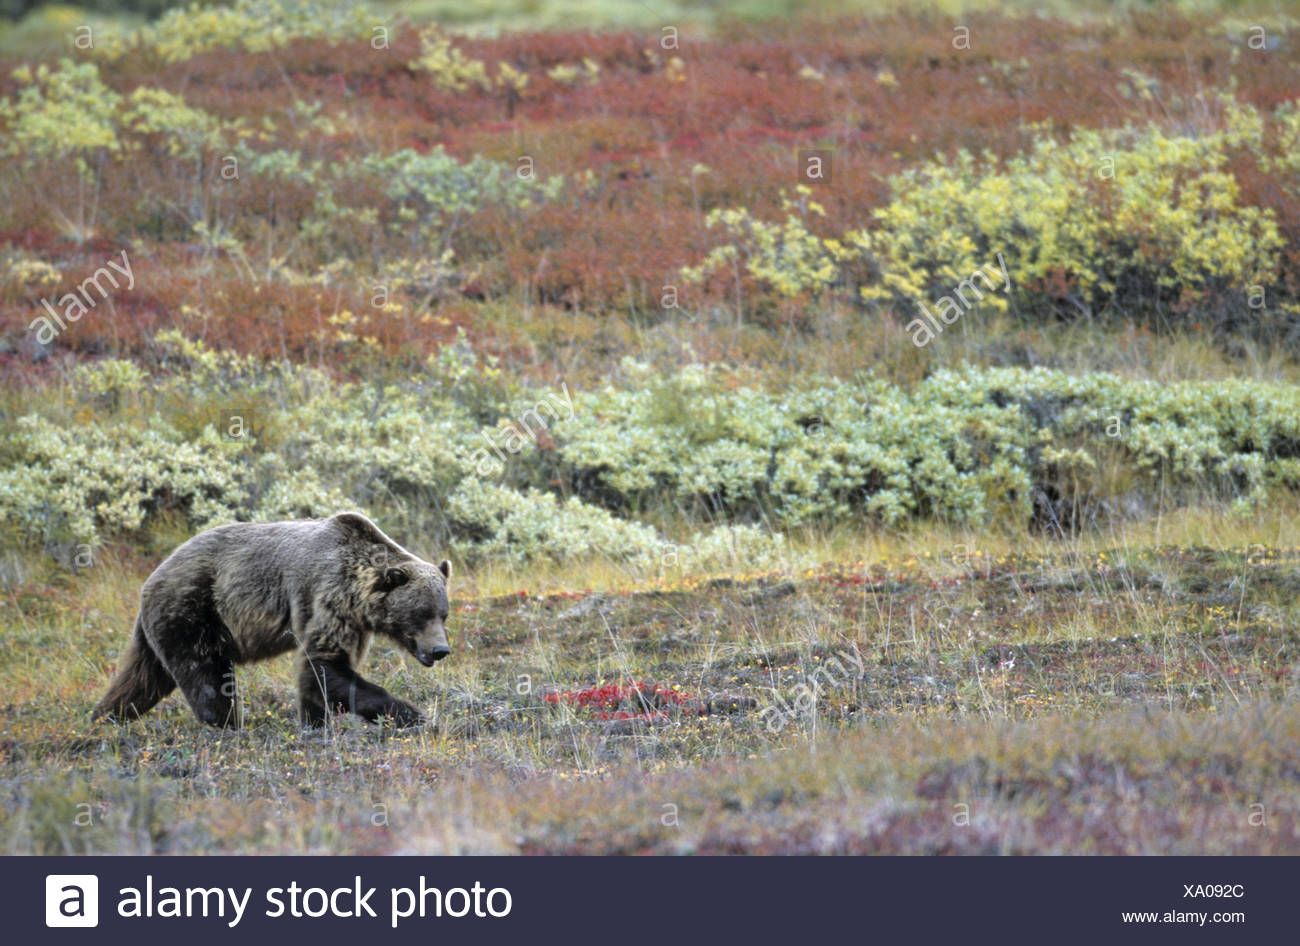 Grizzly Bear searching for food in the tundra - Stock Image